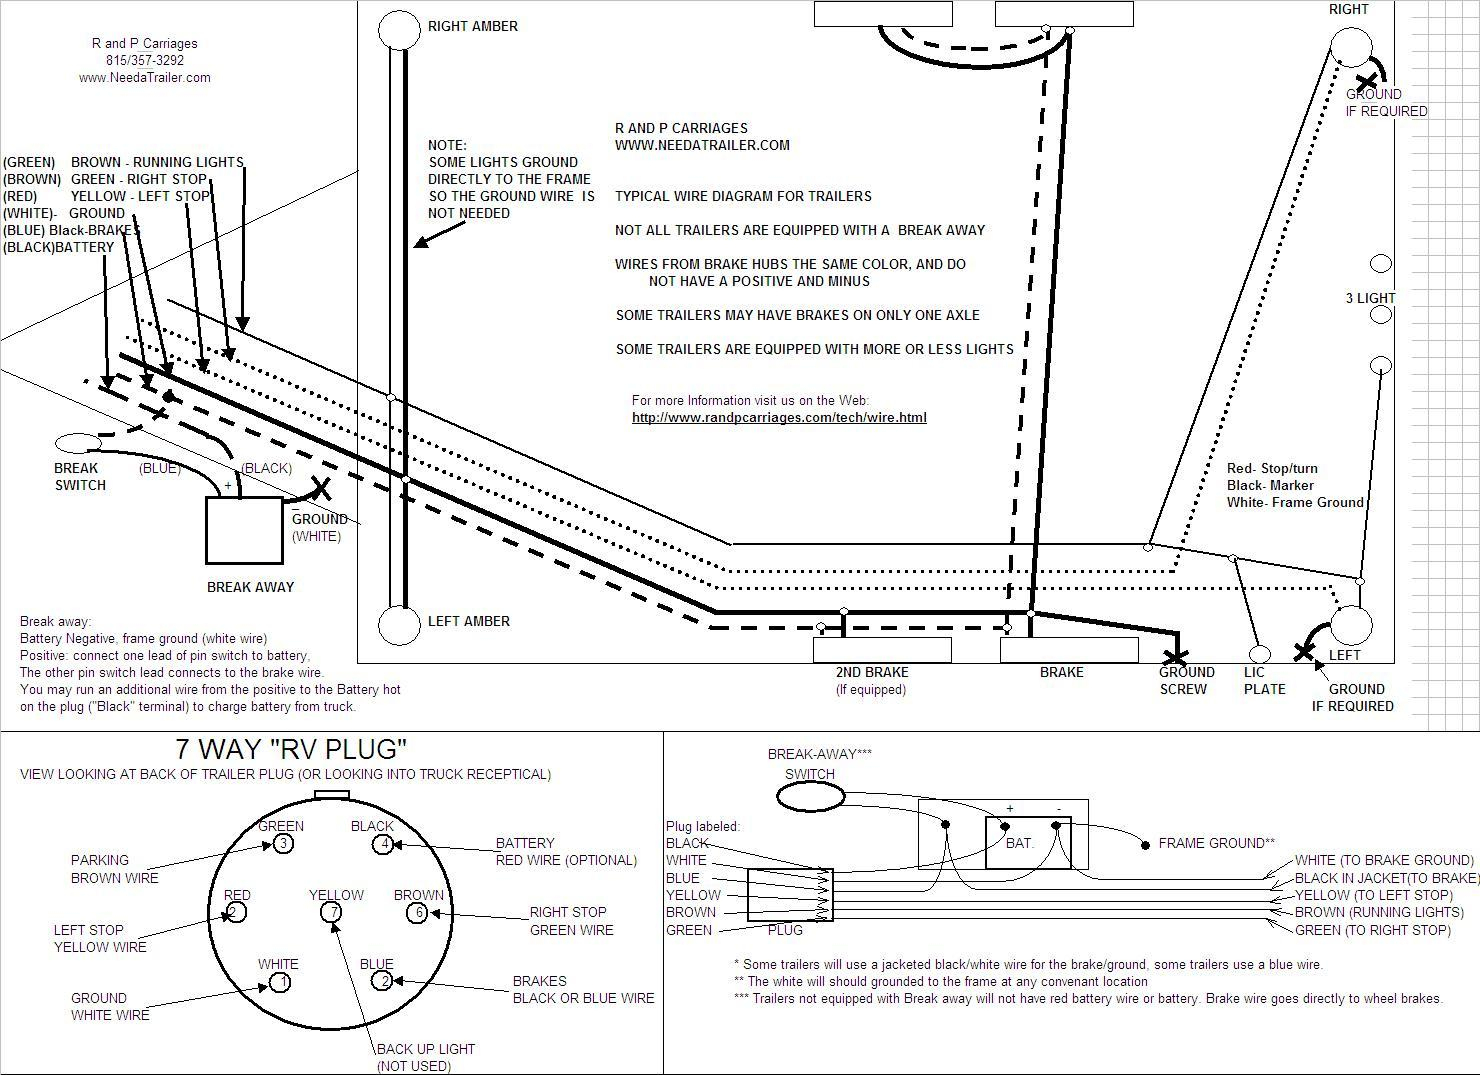 Brake Controller Installation Instructions - Trailer 7 Way Plug Wiring Diagram